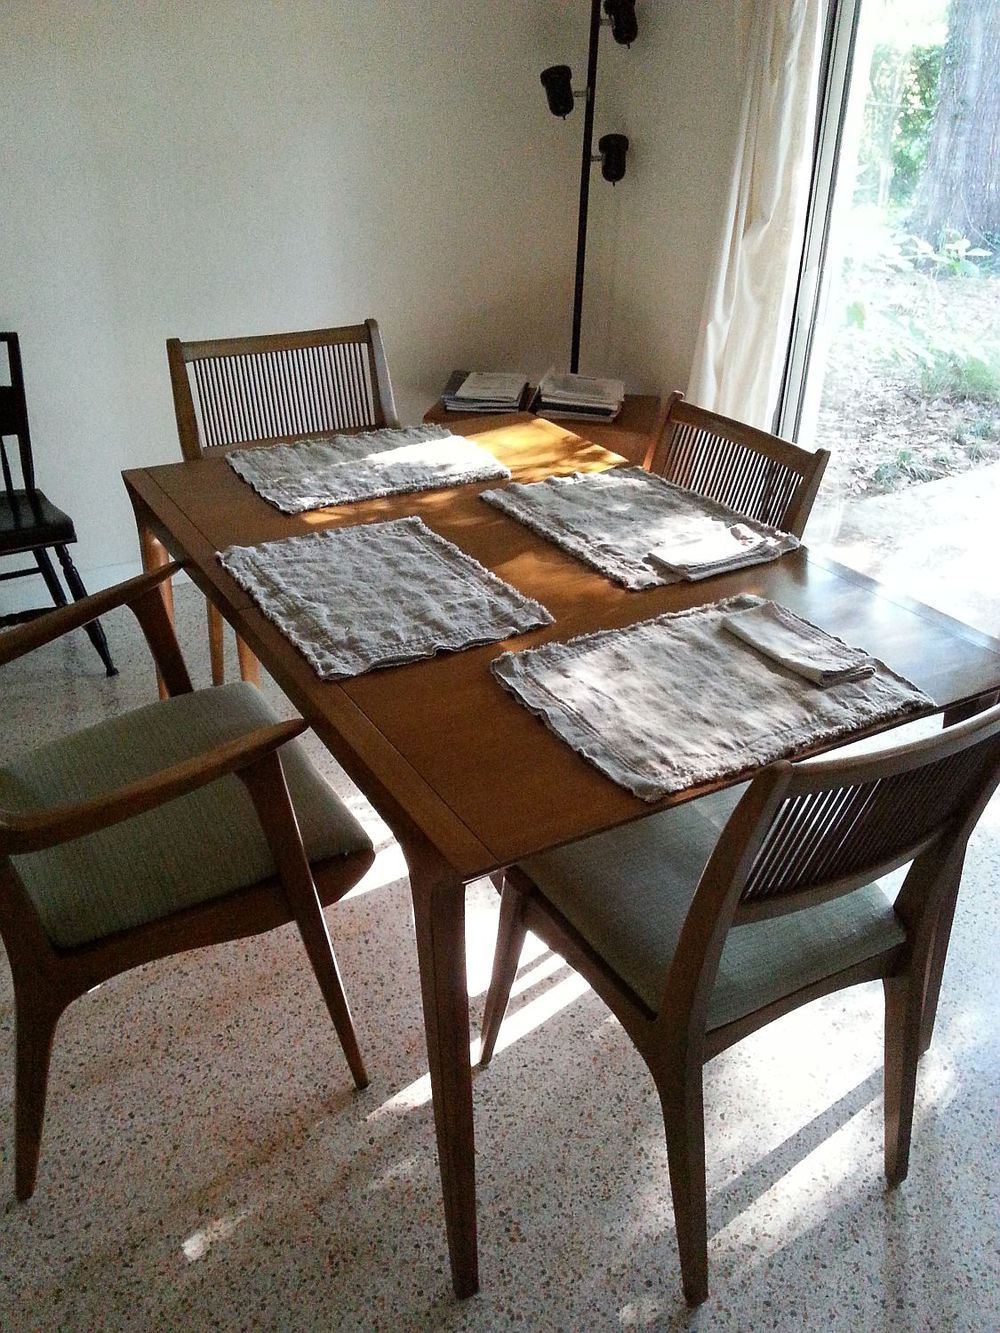 And I'm probably most excited about our major furniture score . . . a 1957 Drexel Profile dining table and 4 chairs . . . a mondo deal from an Ocala antique mall. I've seen these online with 6 chairs for close to $9k - here's the link! Including the cost of renting a van to go down and pick it up, our set was just under $600. I made the placemats with some of my stash of vintage homespun linen . . . they're perfect. Planning on an indigo linen to re-do the seats.